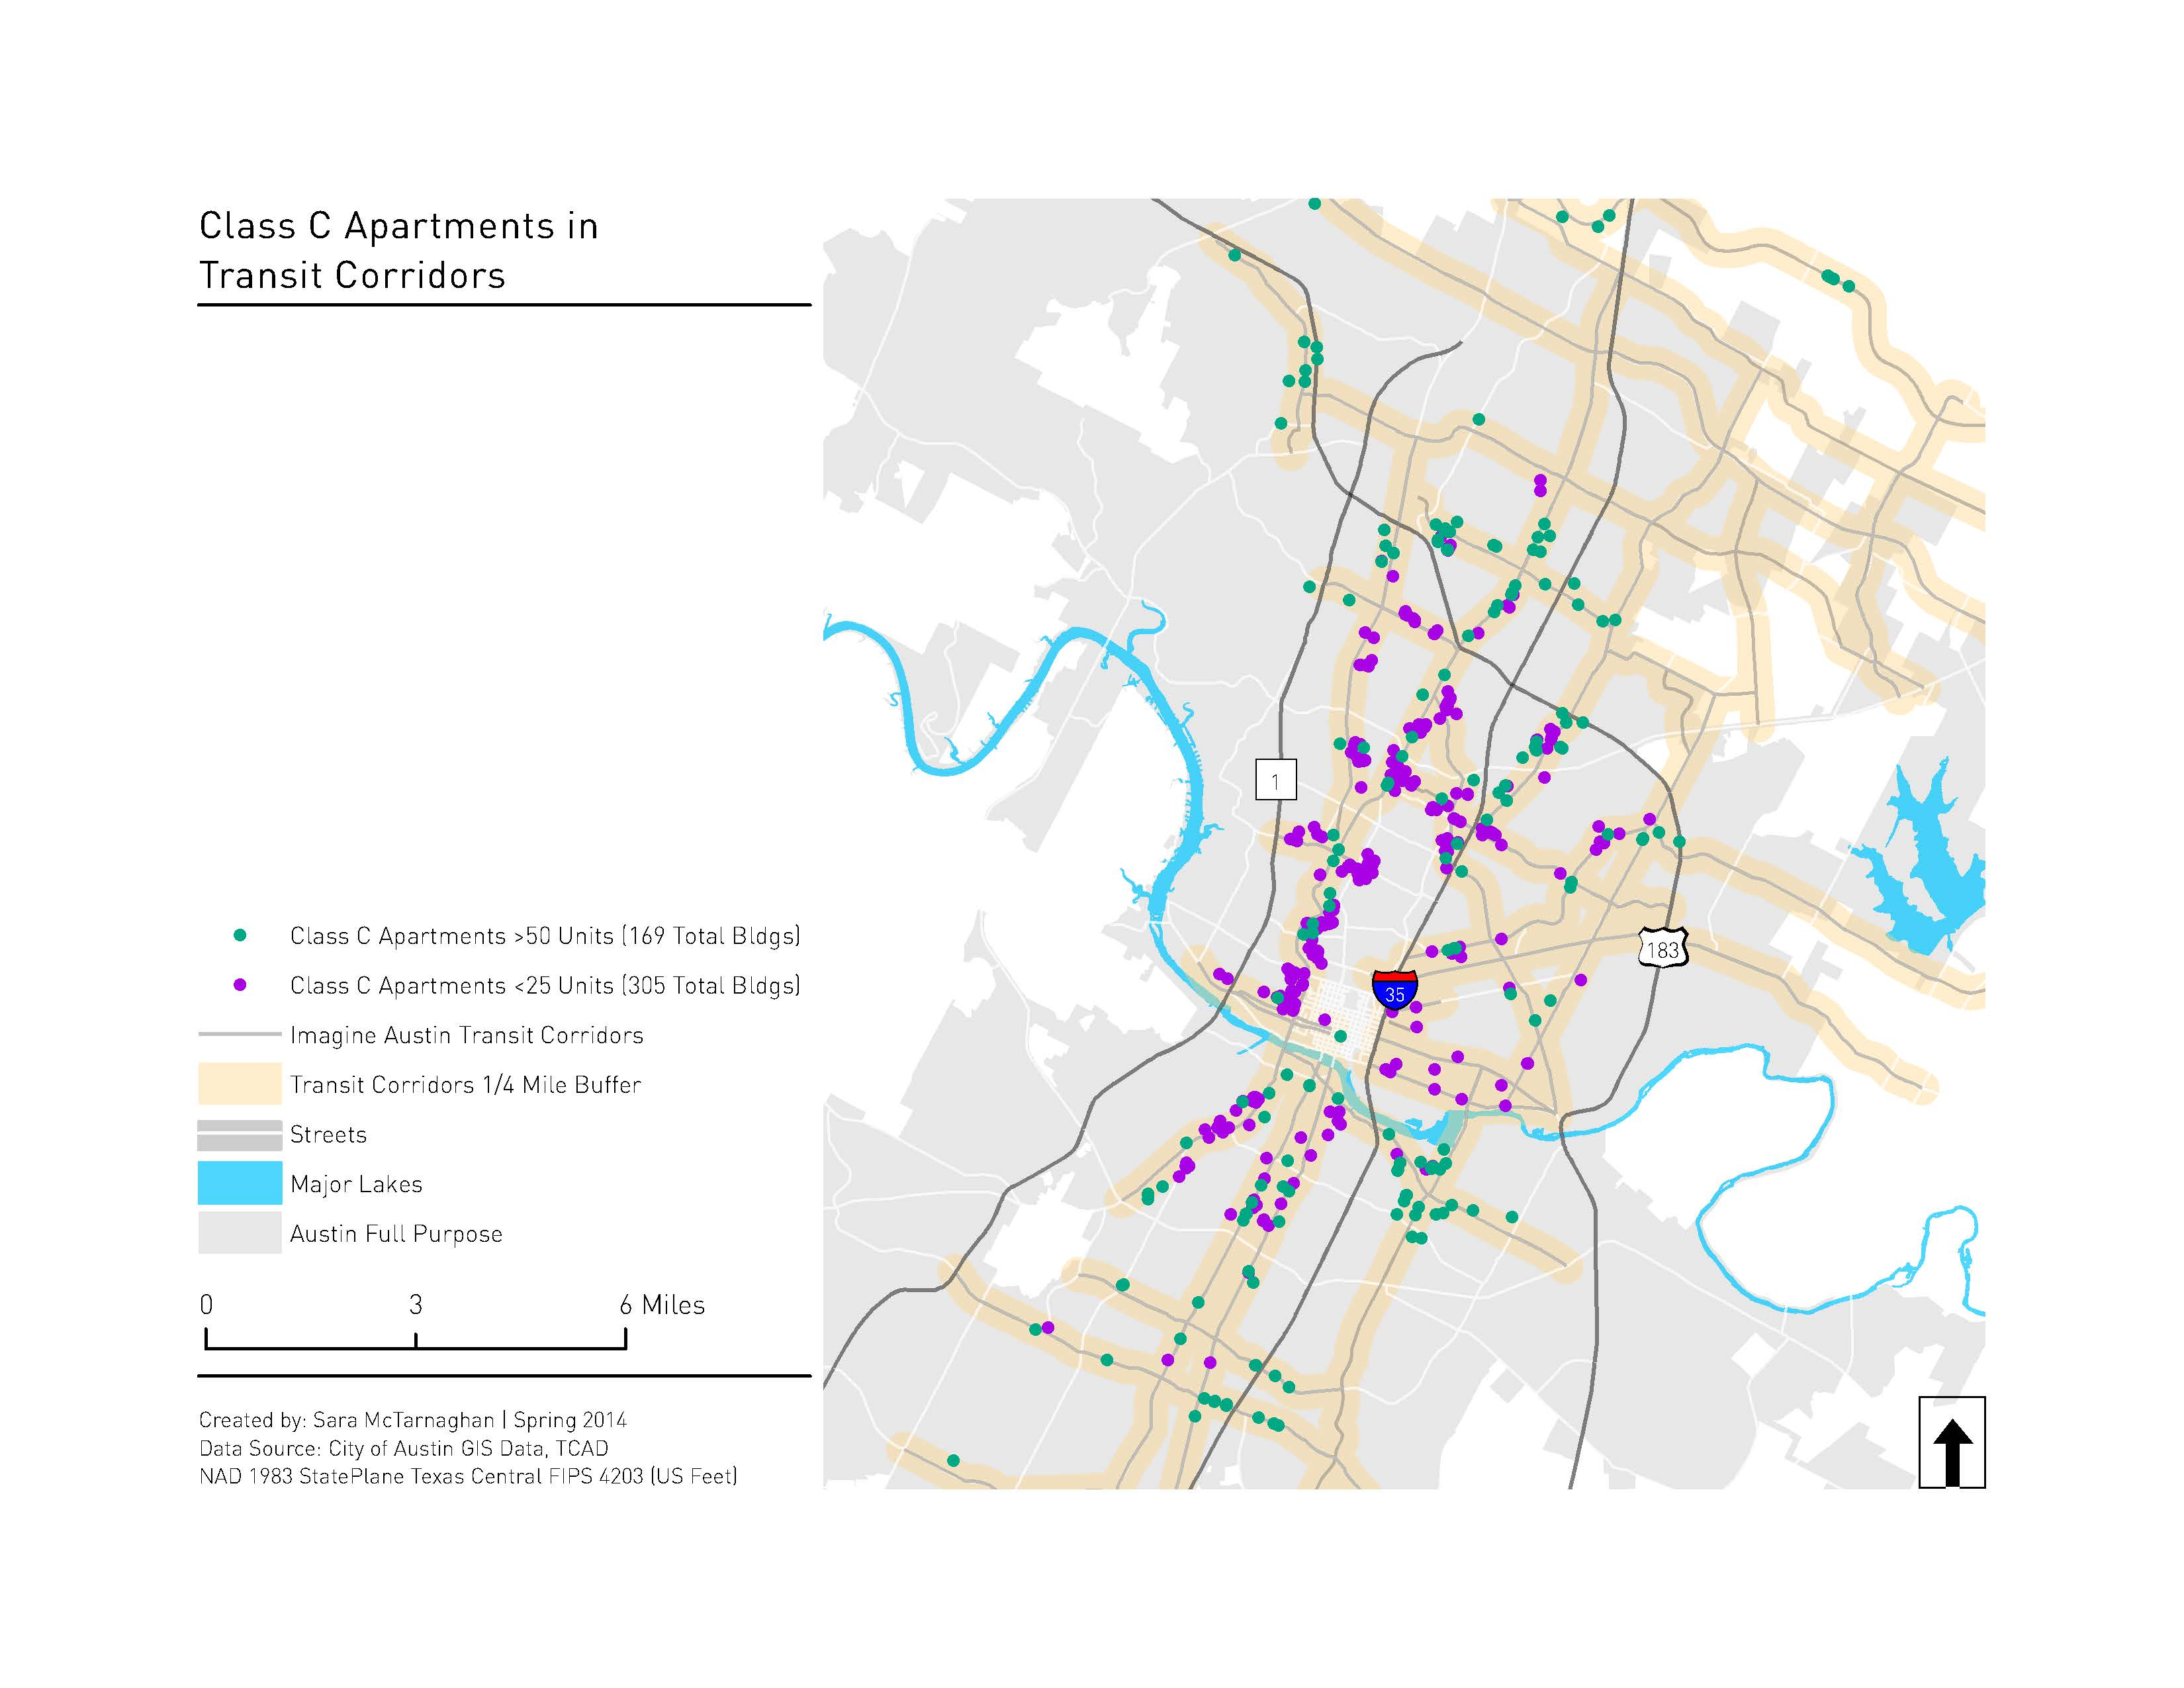 map of transit corridors and aging rental housing